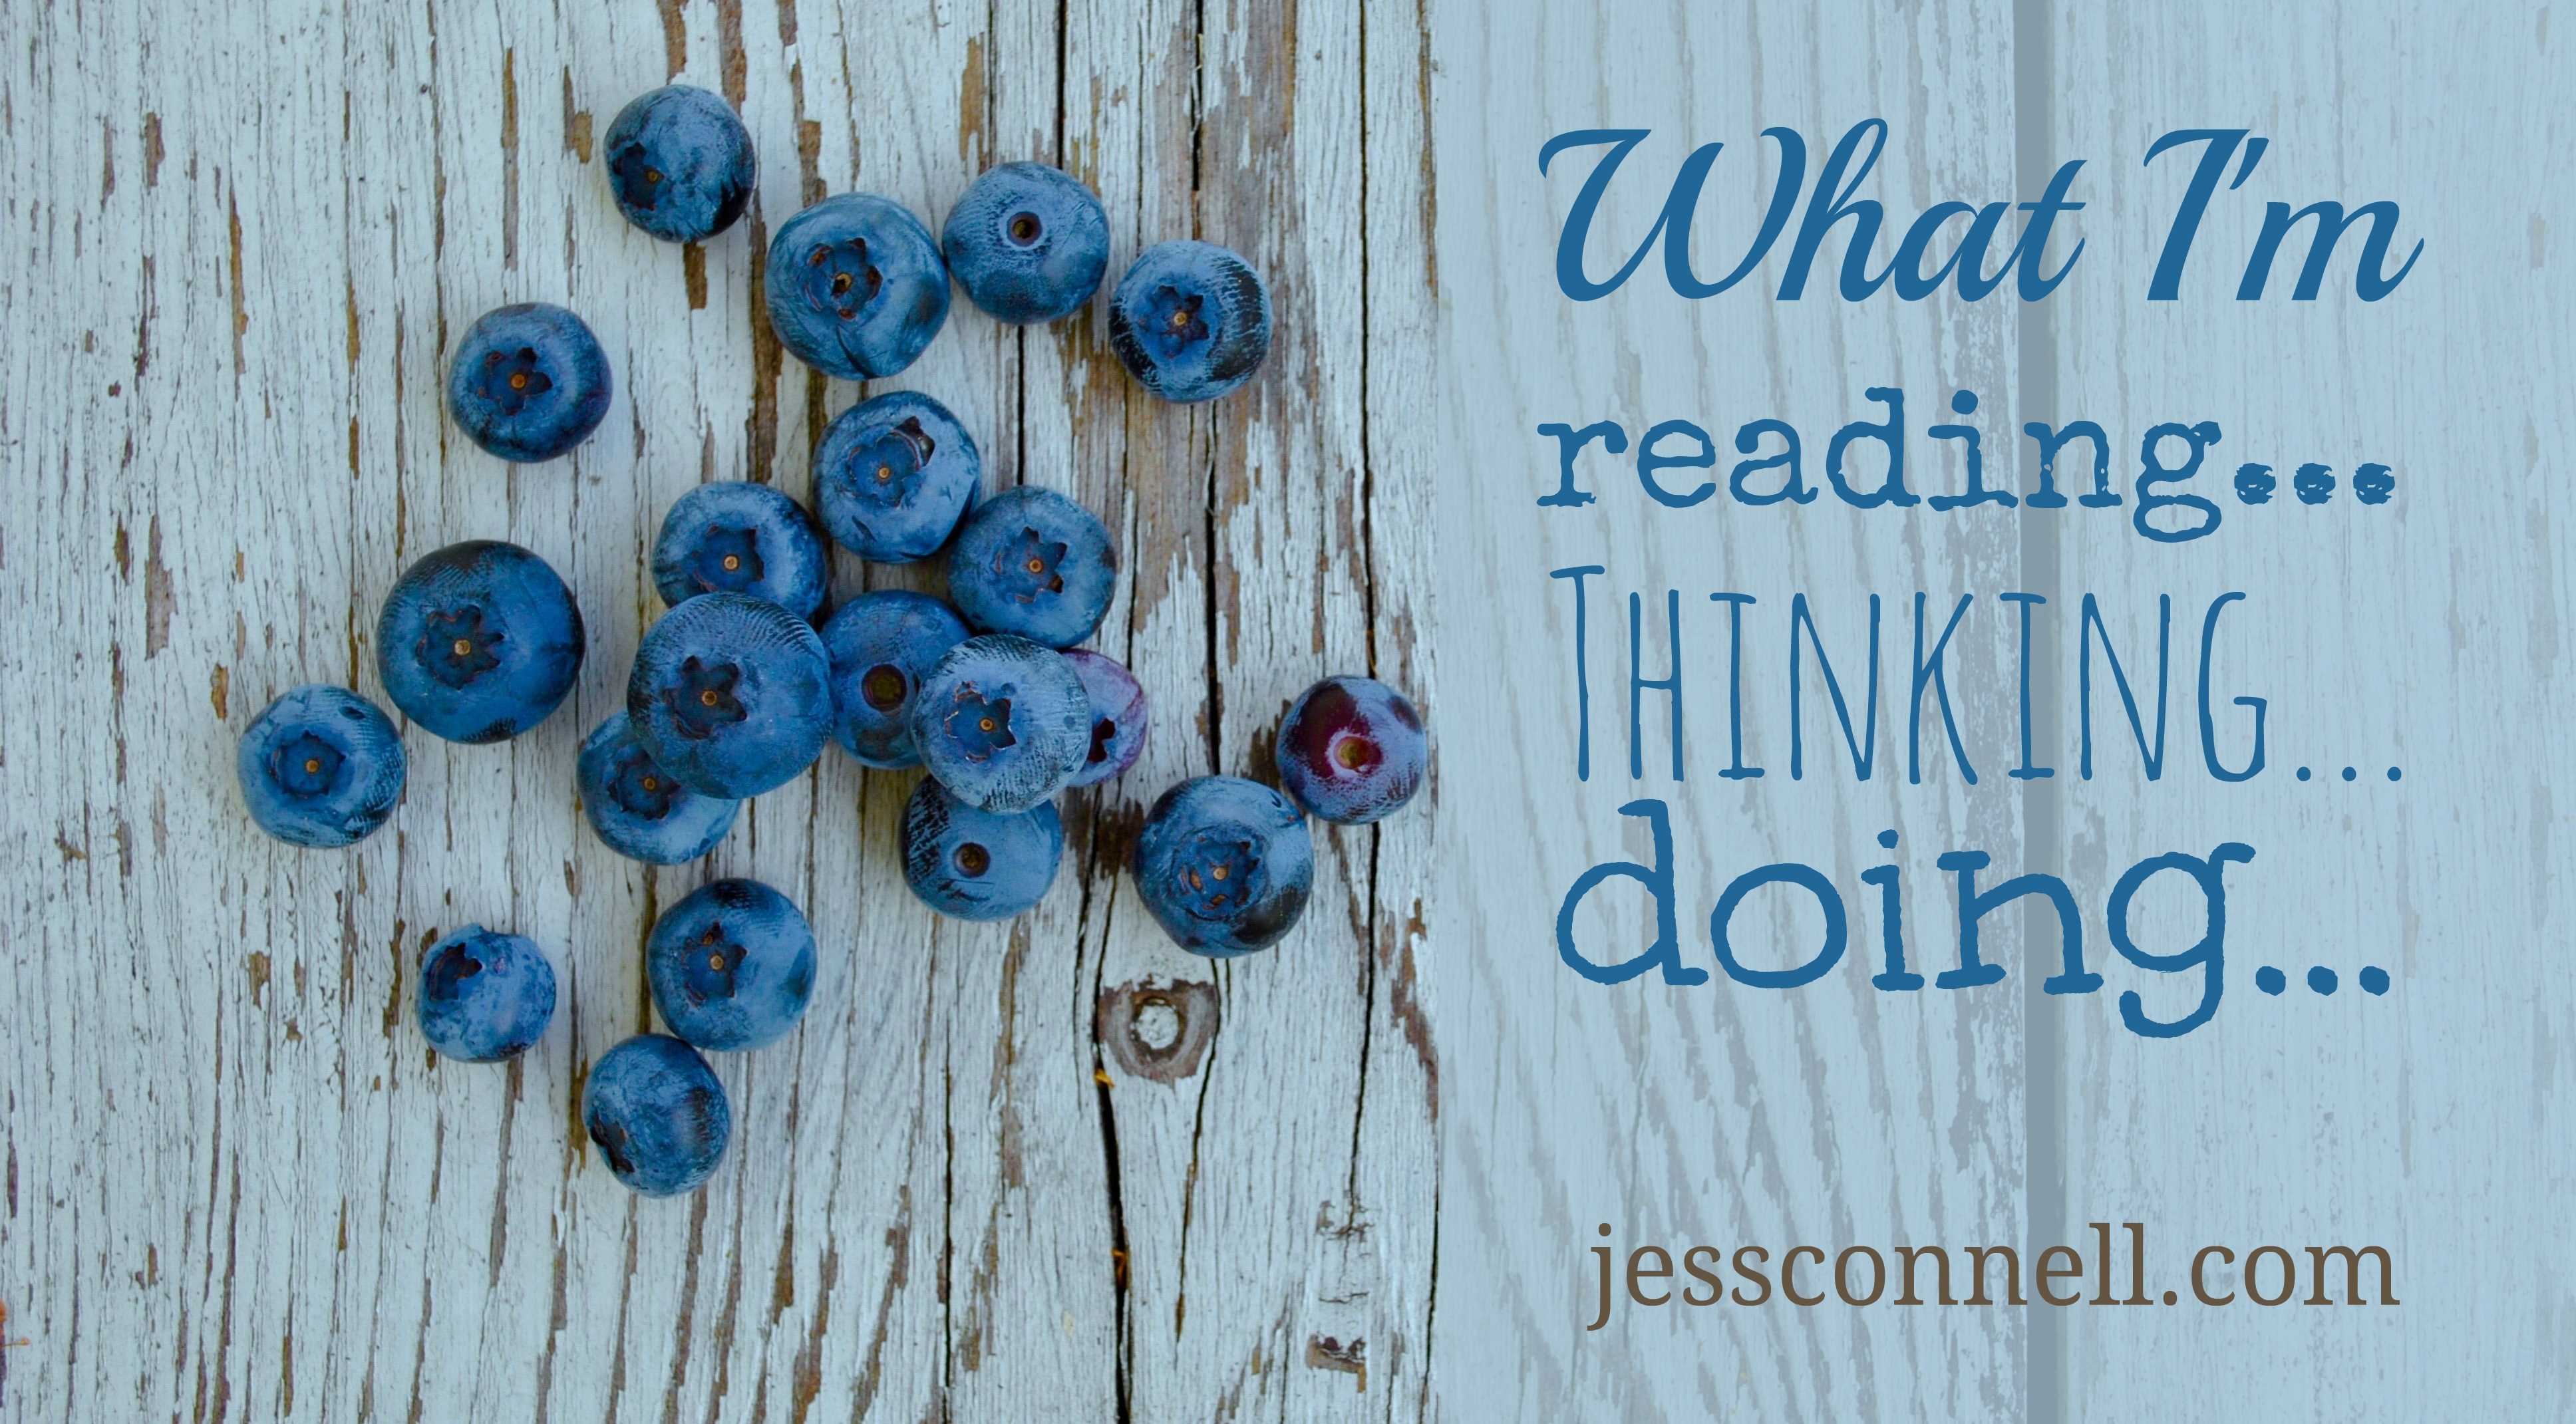 What I'm Reading, Thinking, Doing 7/25/15 -- jessconnell.com